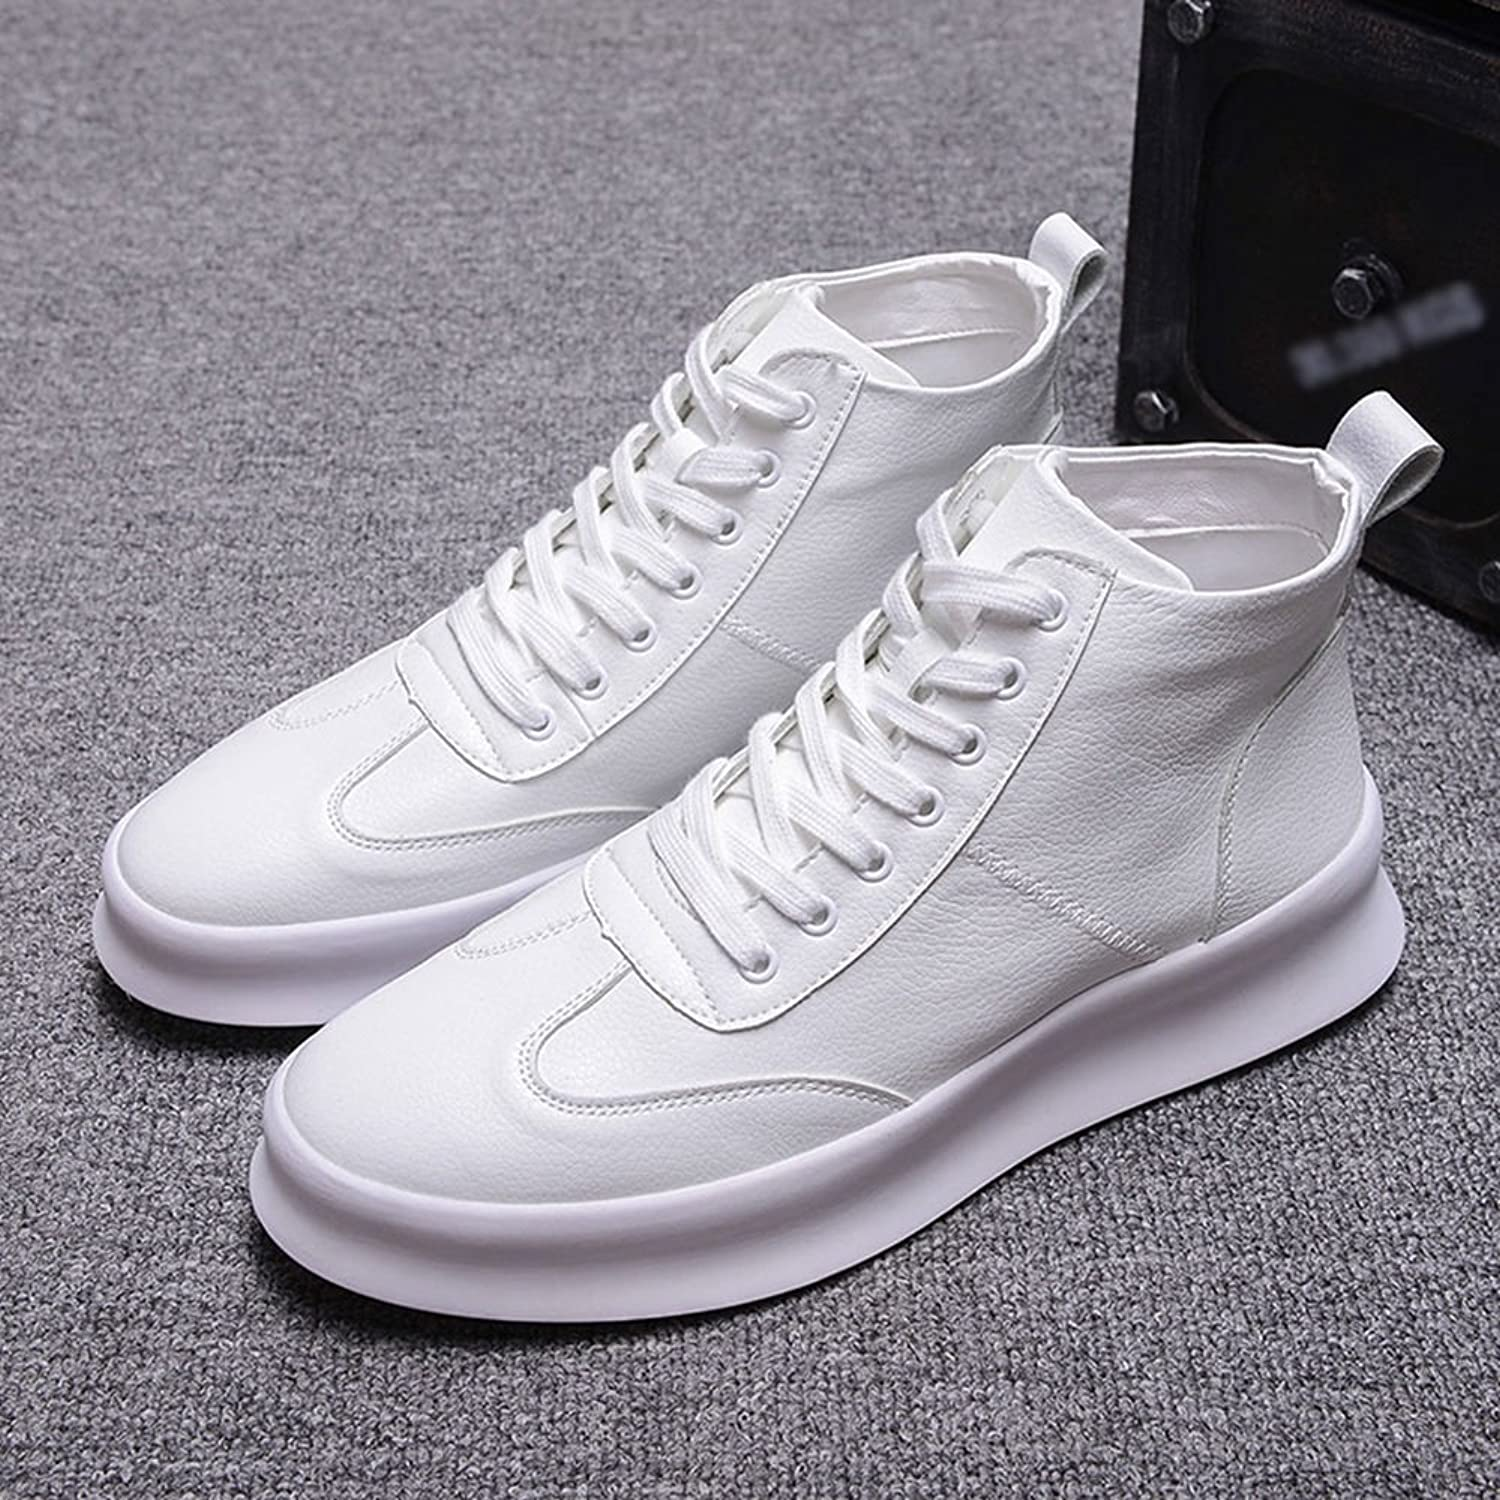 Feifei Men's shoes Spring and Autumn Fashion High Help Casual shoes 3 colors (color   White, Size   EU39 UK6 CN39)